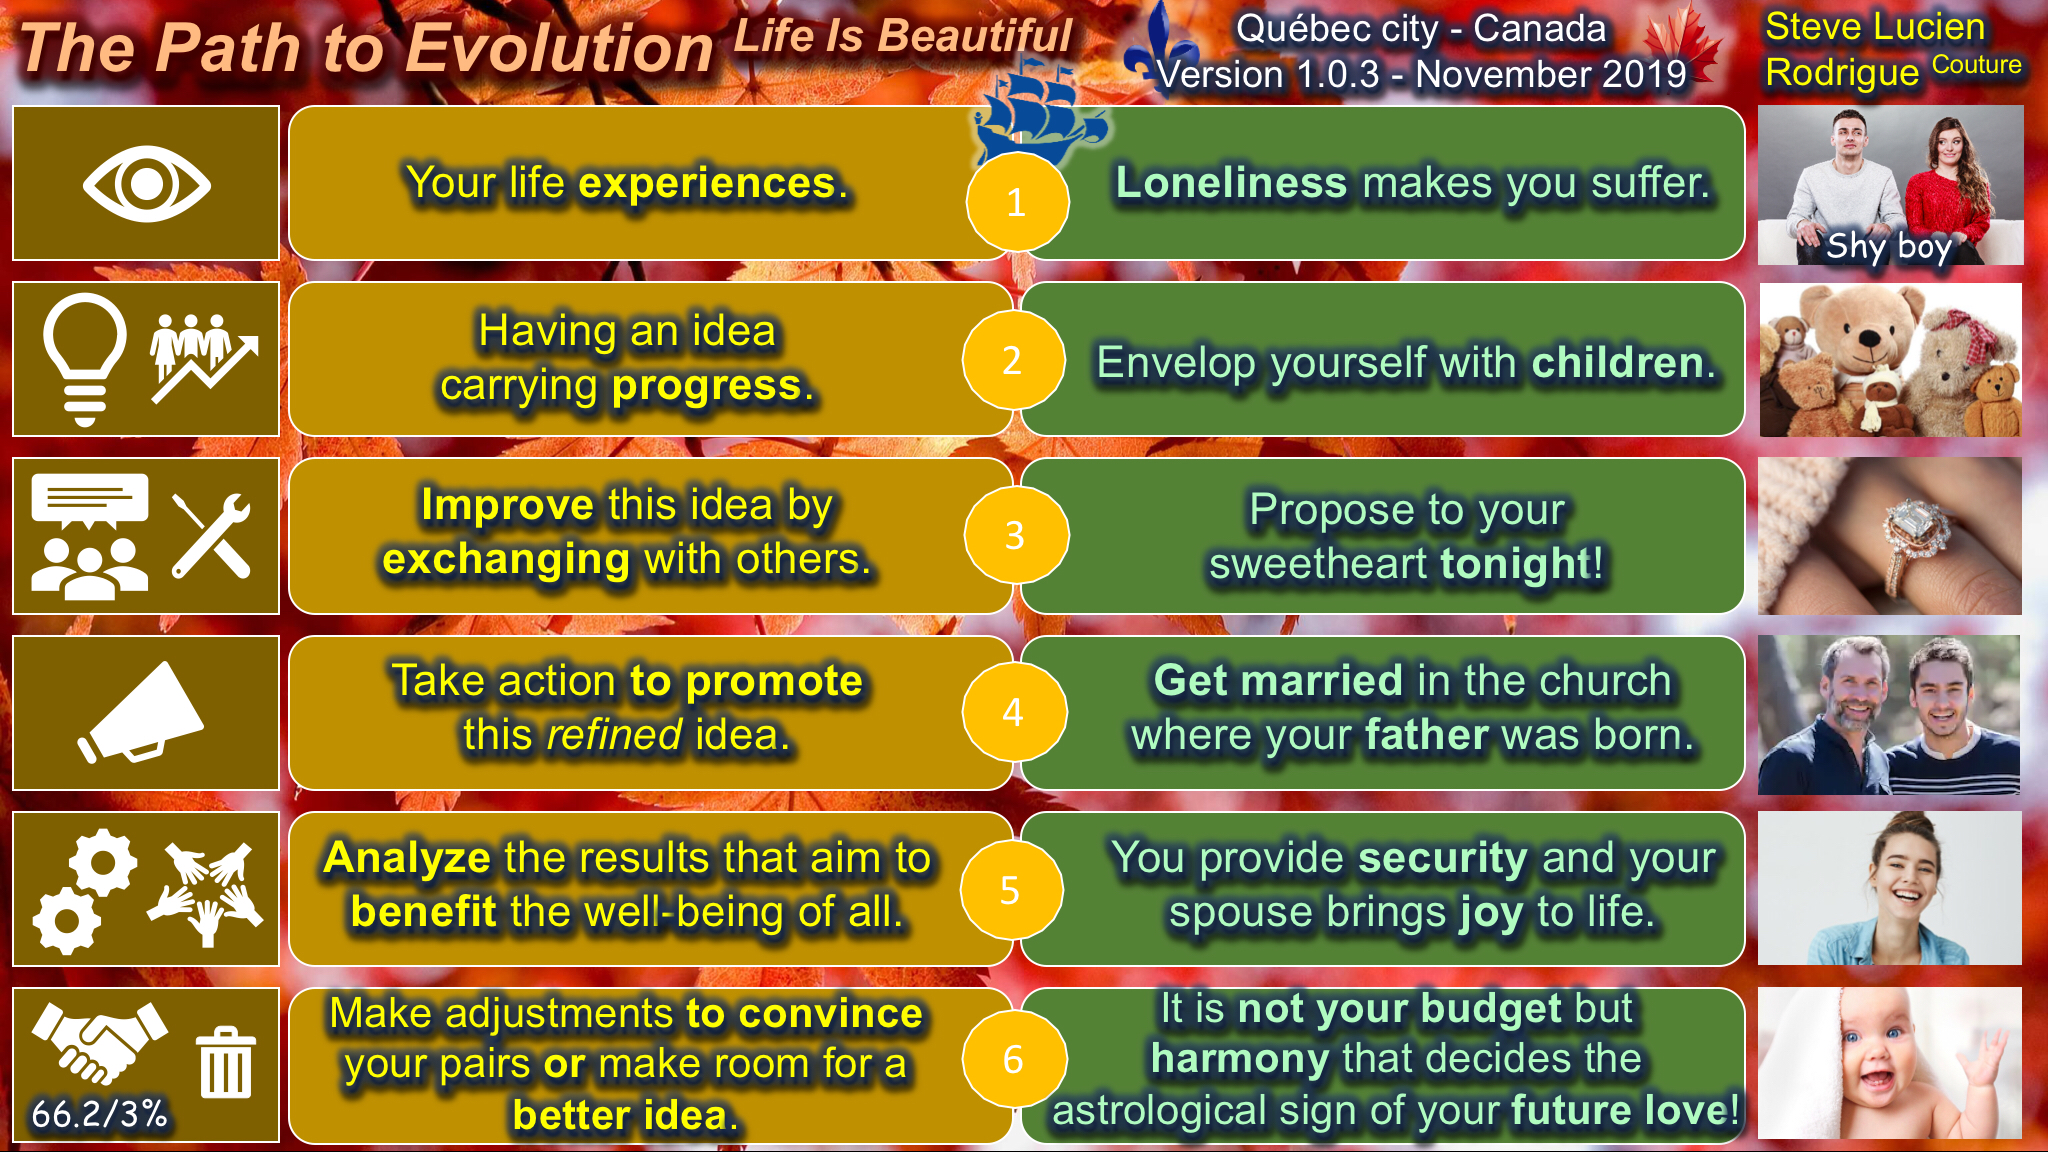 The Path to Evolution